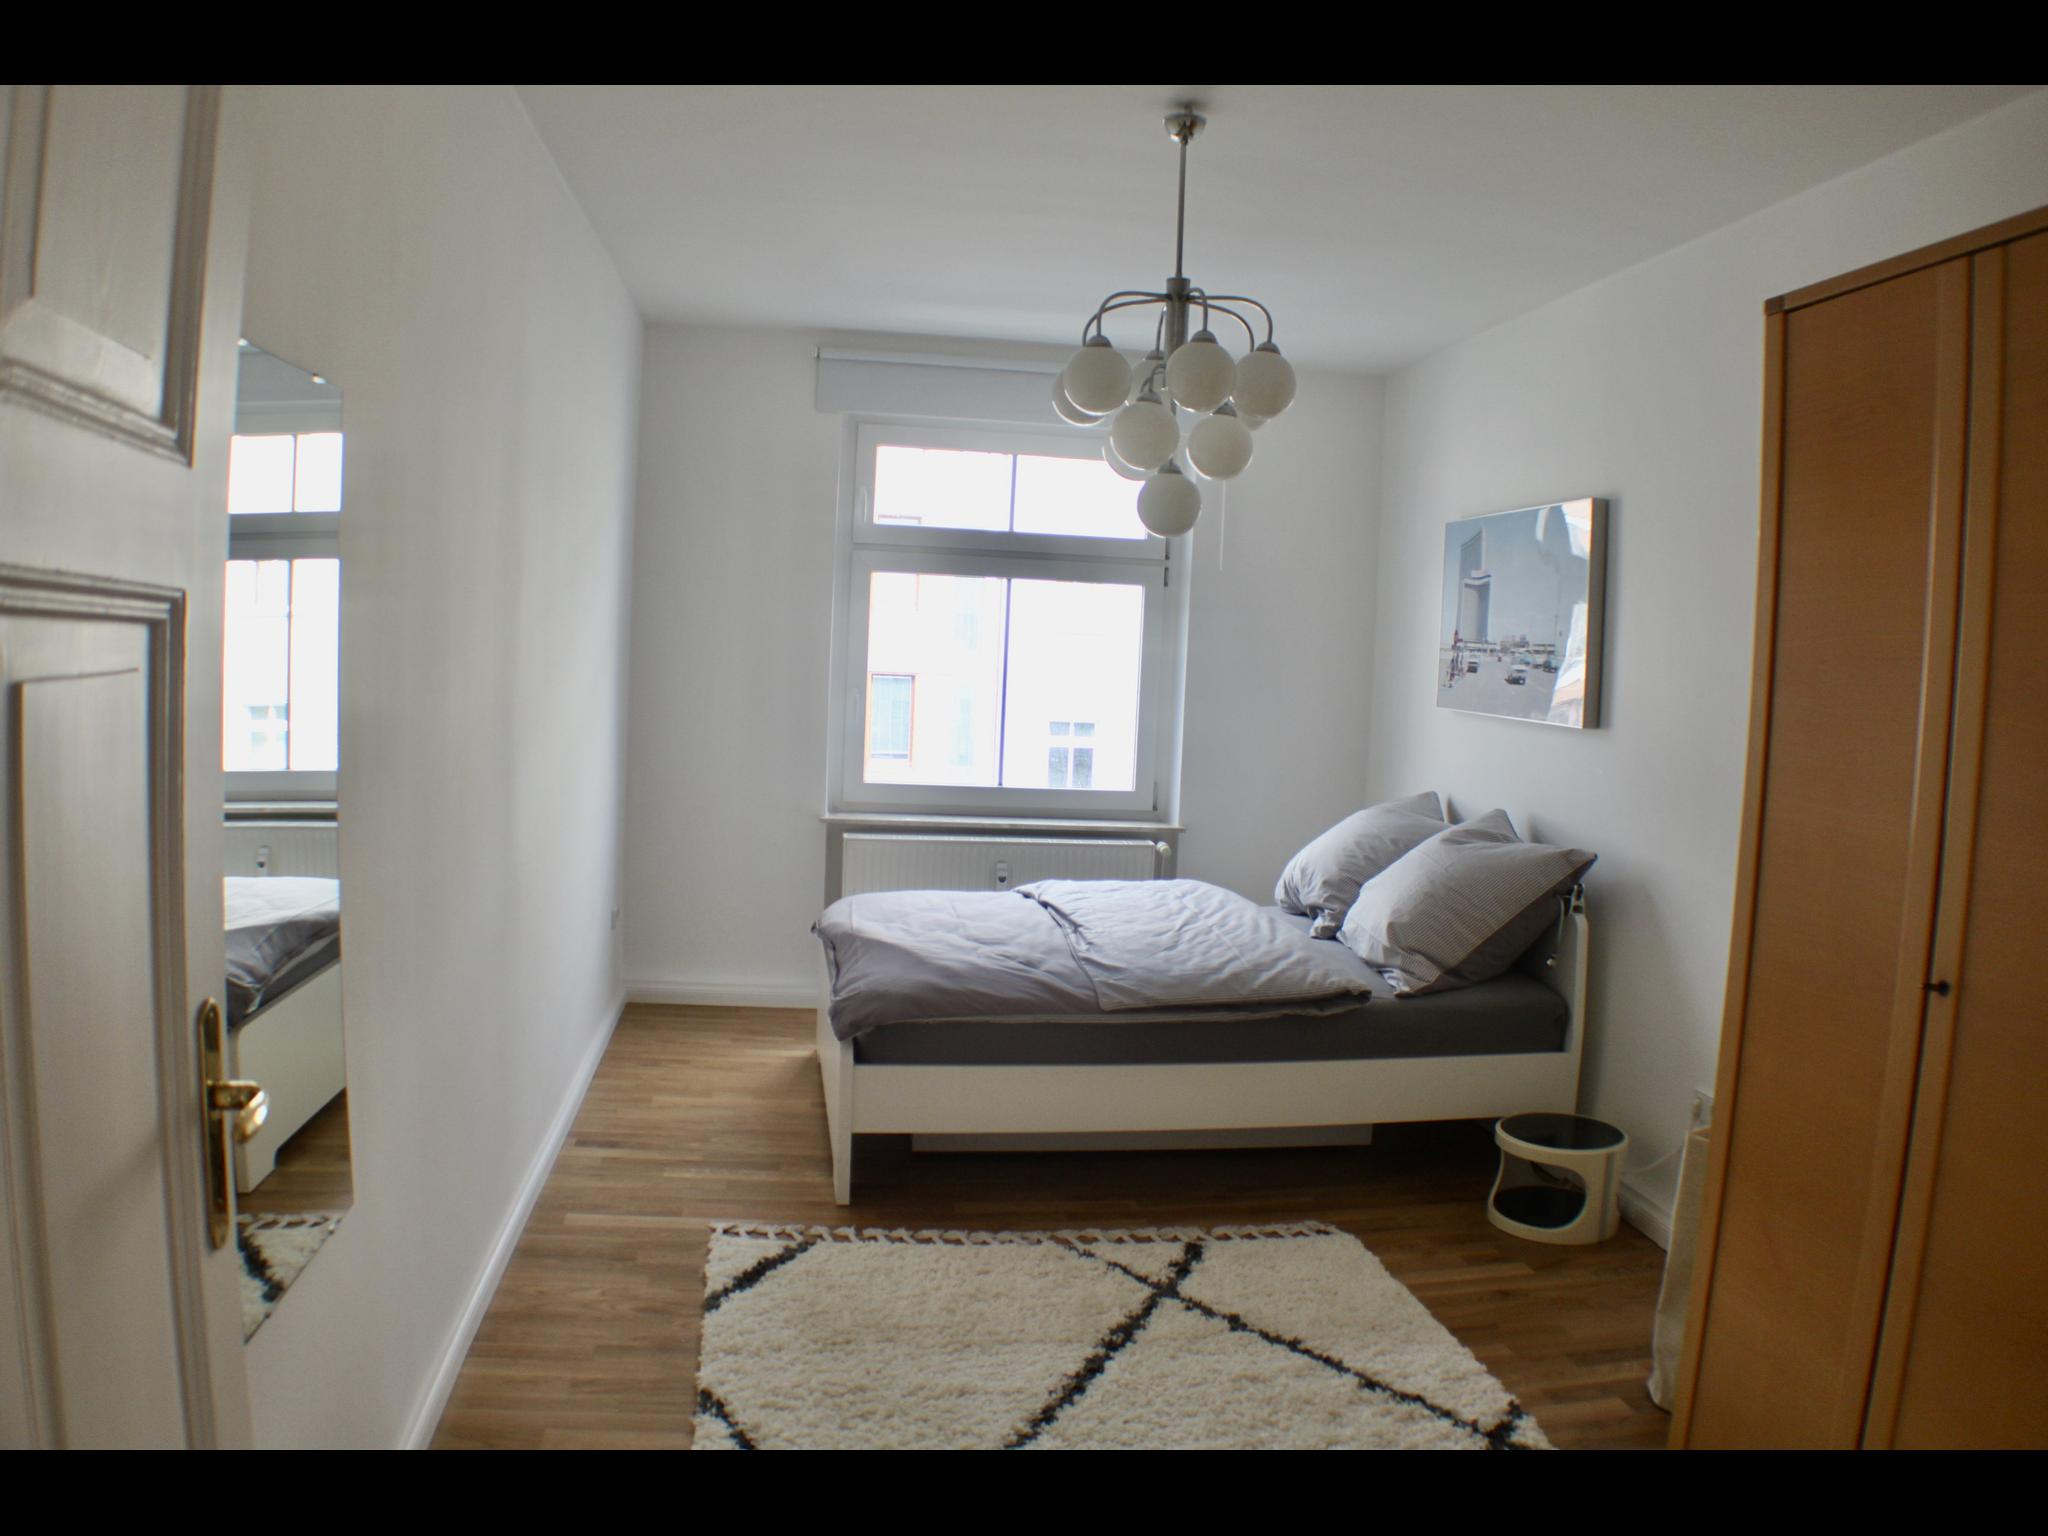 Zion - Entry ready apartment in Berlin